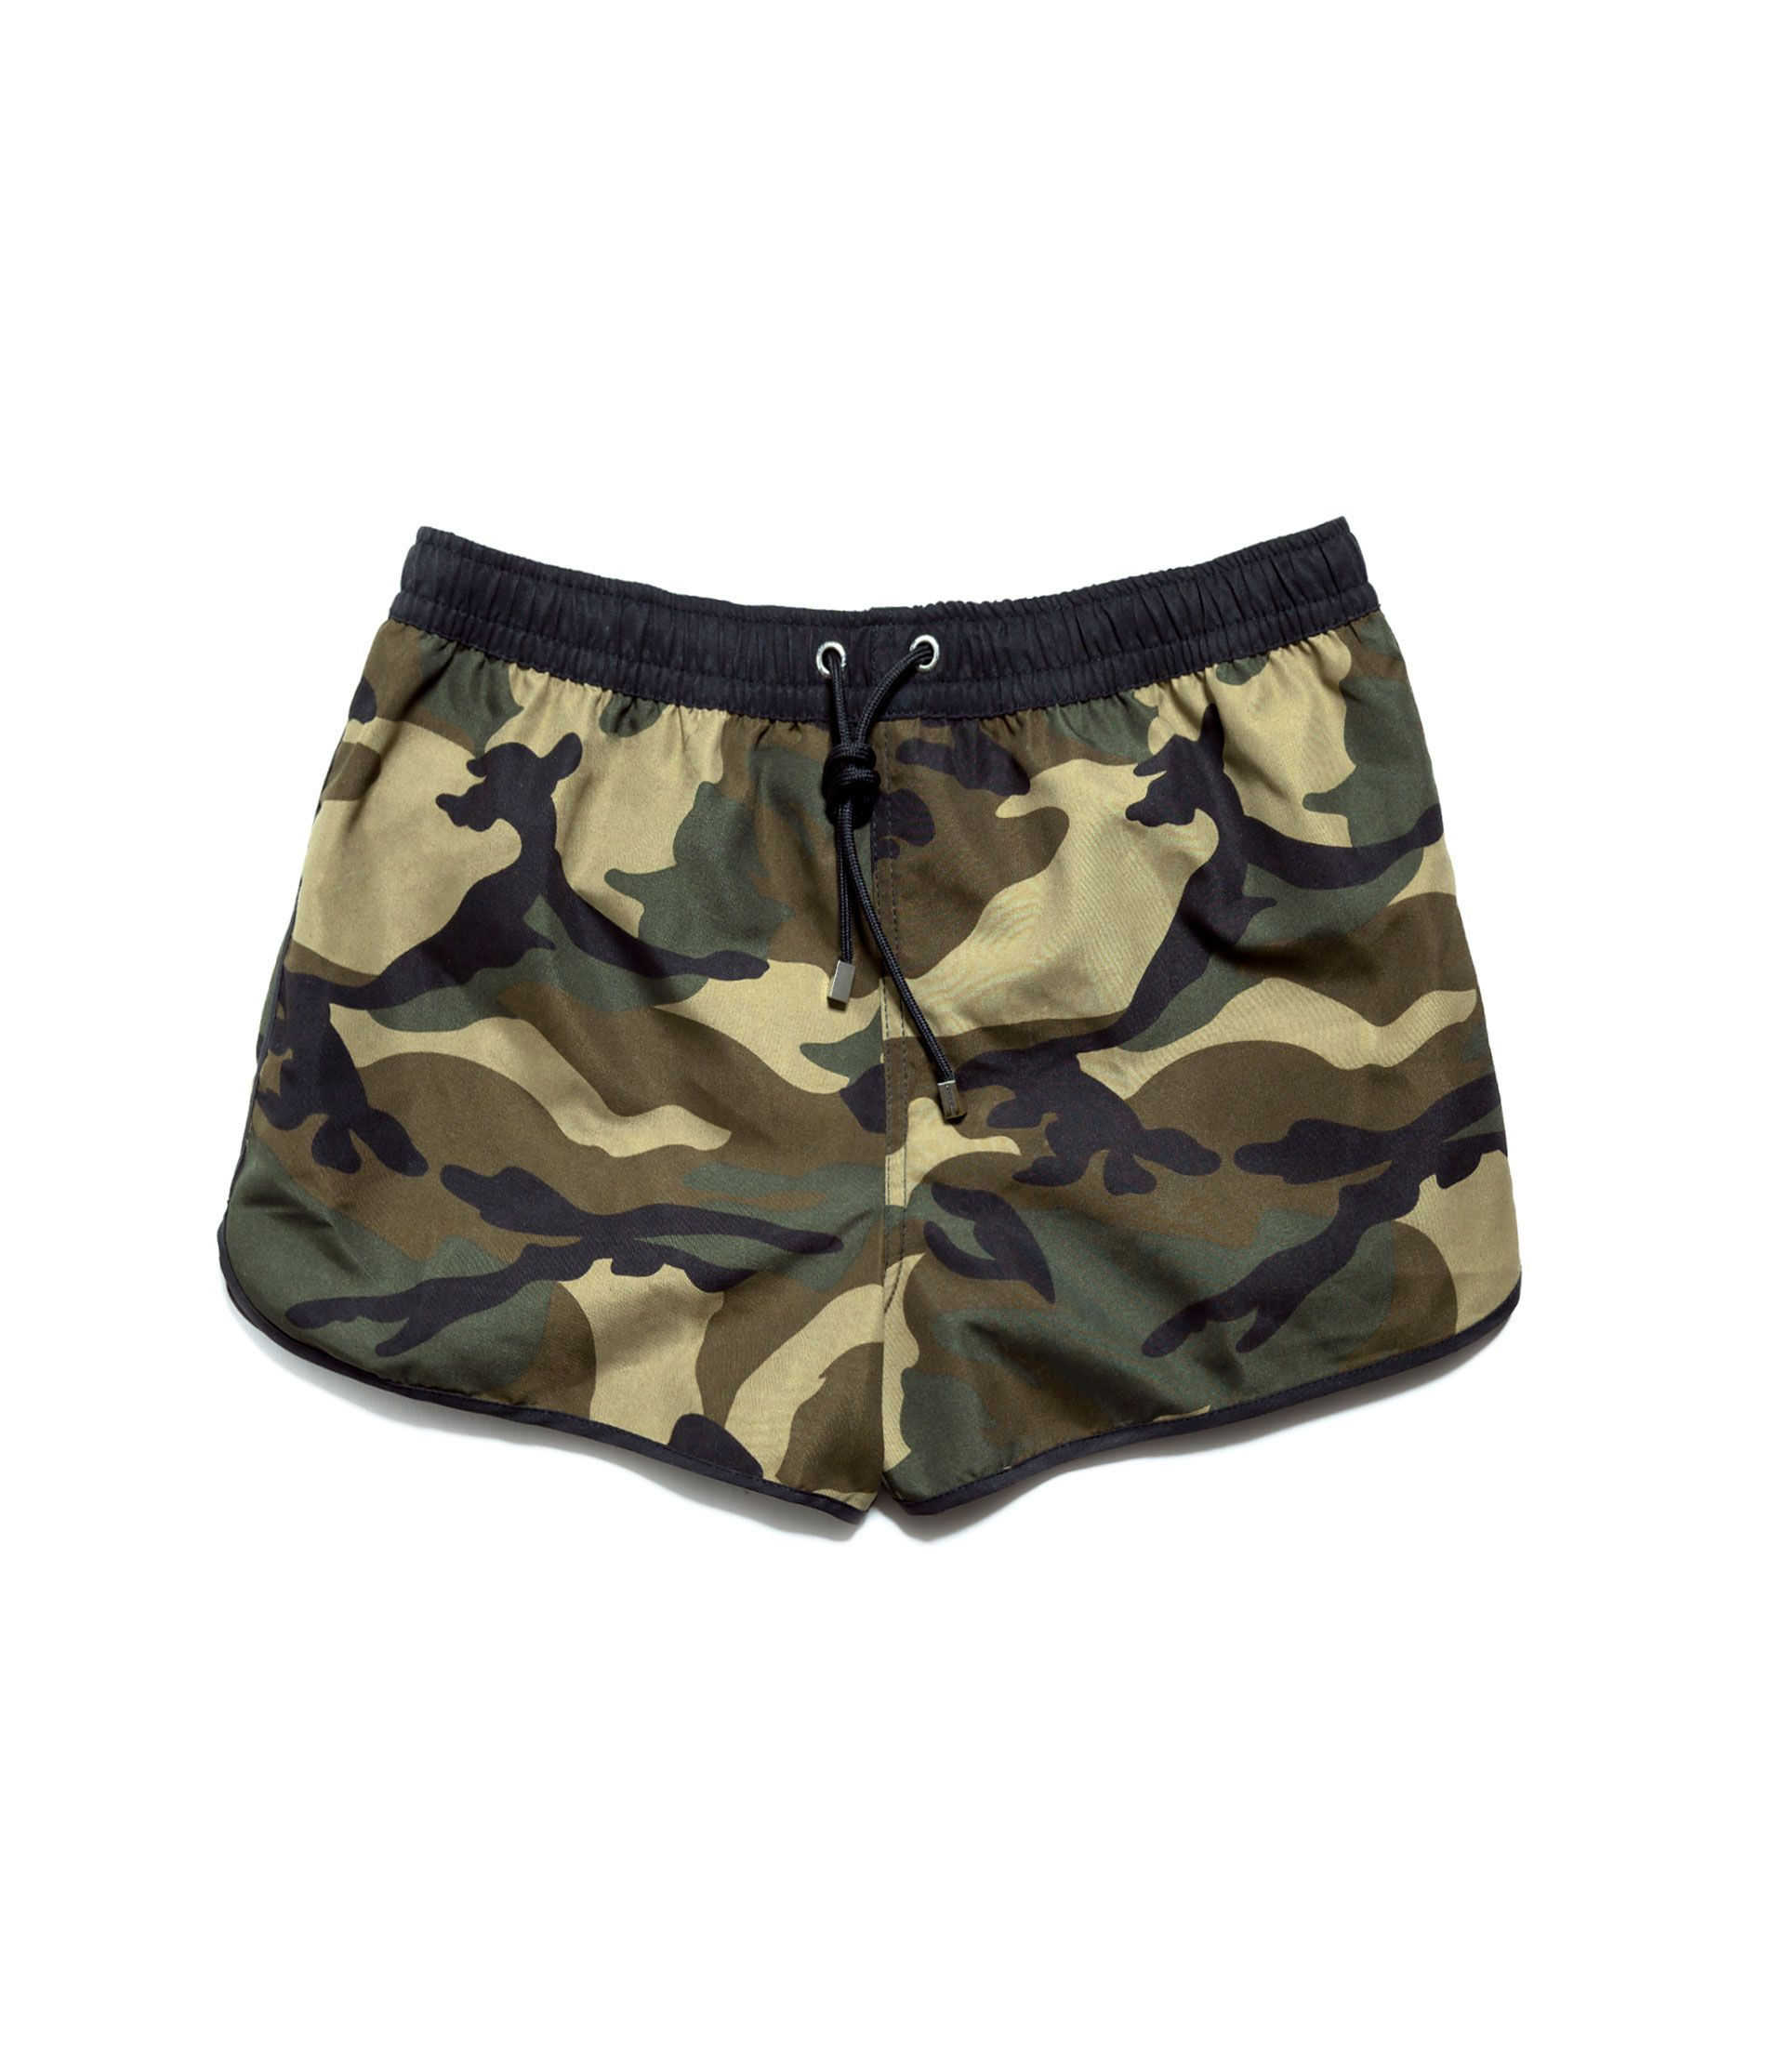 d0e236bb45 CAMOUFLAGE SWIM SHORTS - Swimwear - Man - ZARA United States | items ...